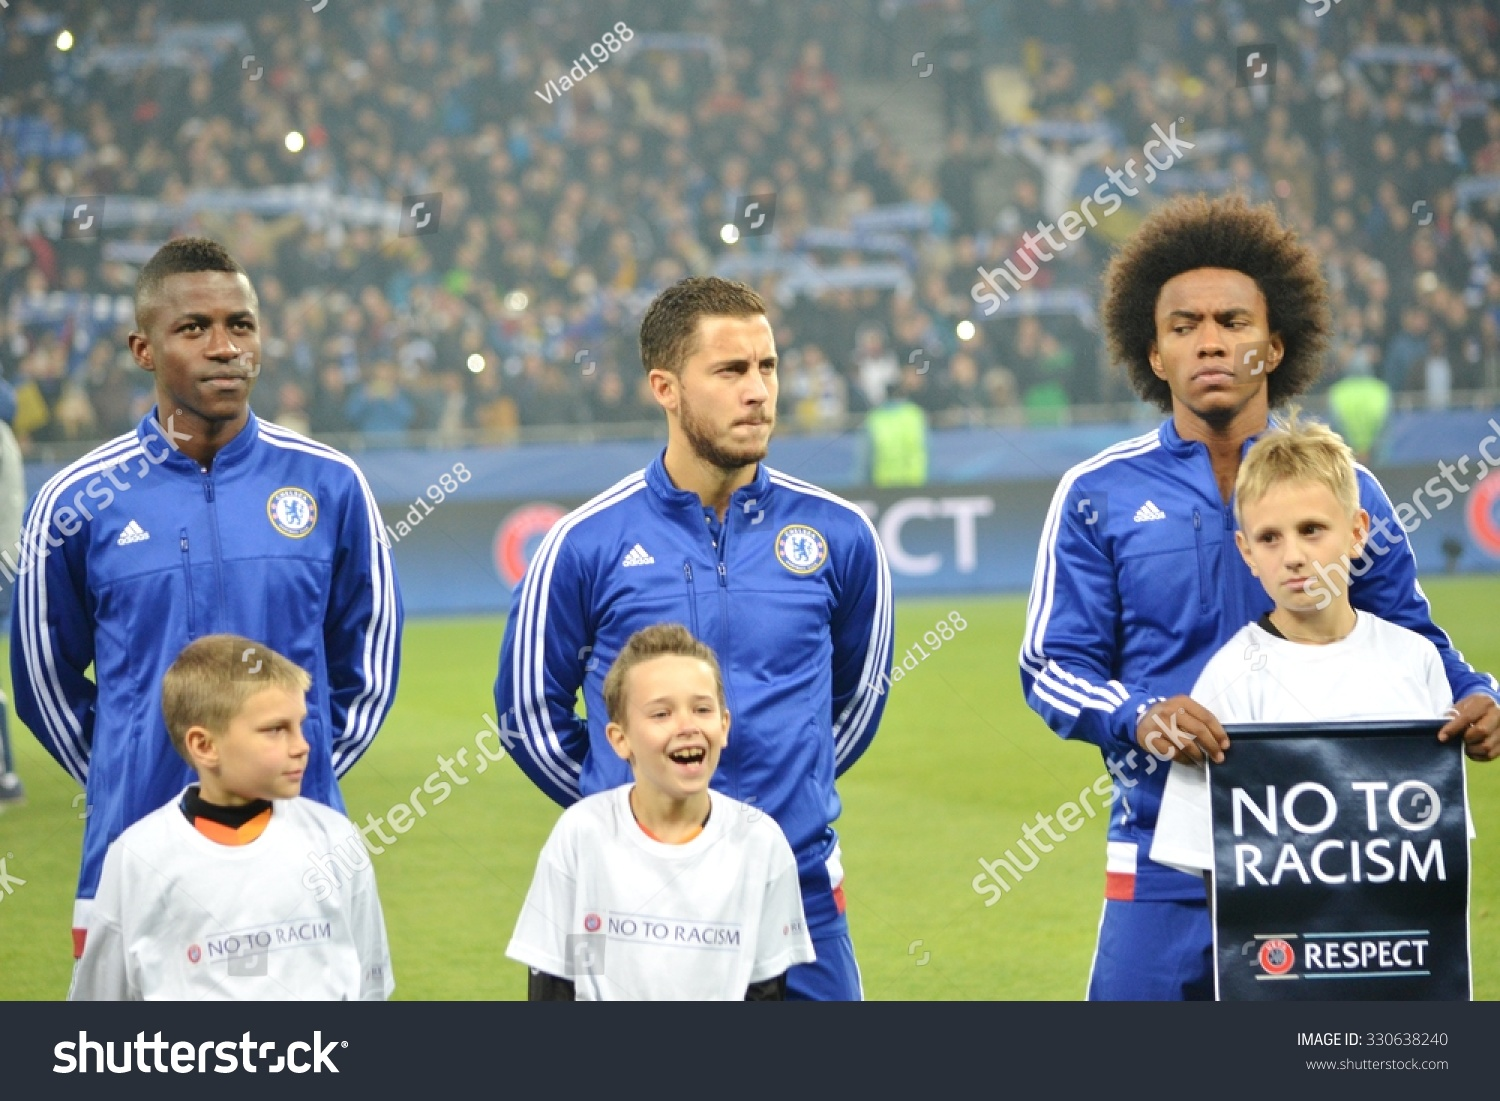 ¿Cuánto mide Eden Hazard? - Altura y peso - Real height and weight Stock-photo-kiev-ukraine-okt-willian-r-ramires-l-eden-hazard-c-during-the-uefa-champions-league-330638240